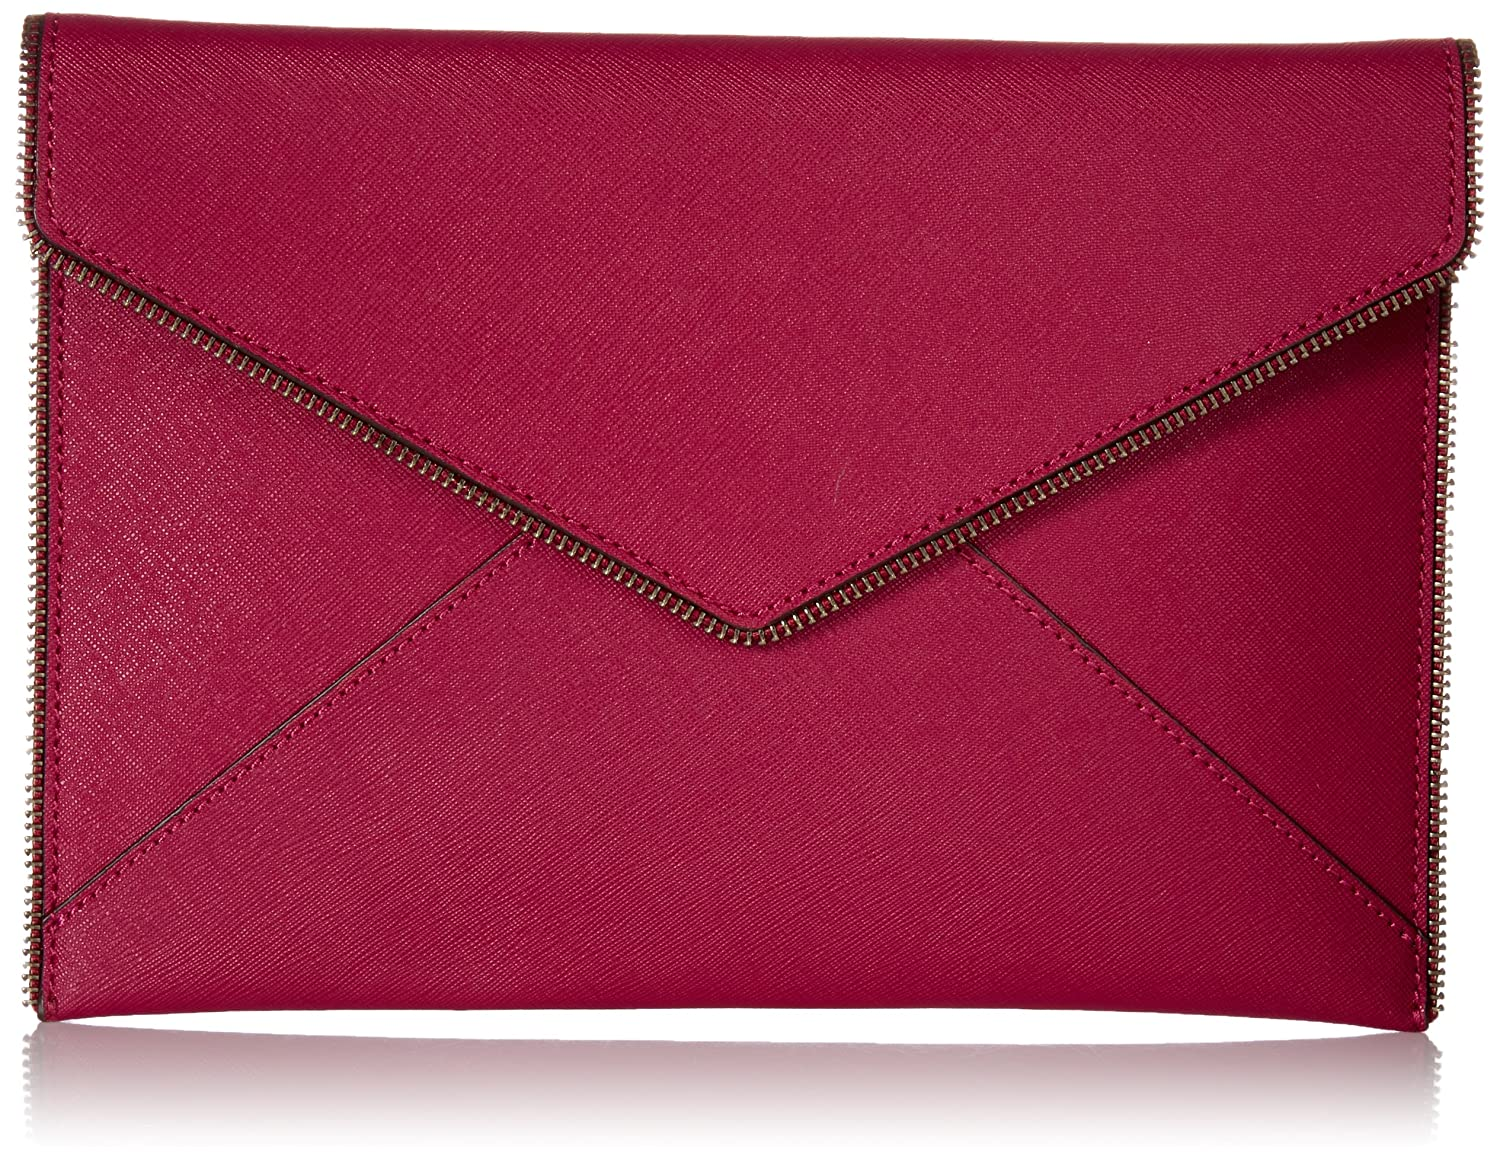 Rebecca Minkoff Leo Clutch Deep Red HR26GSSC17